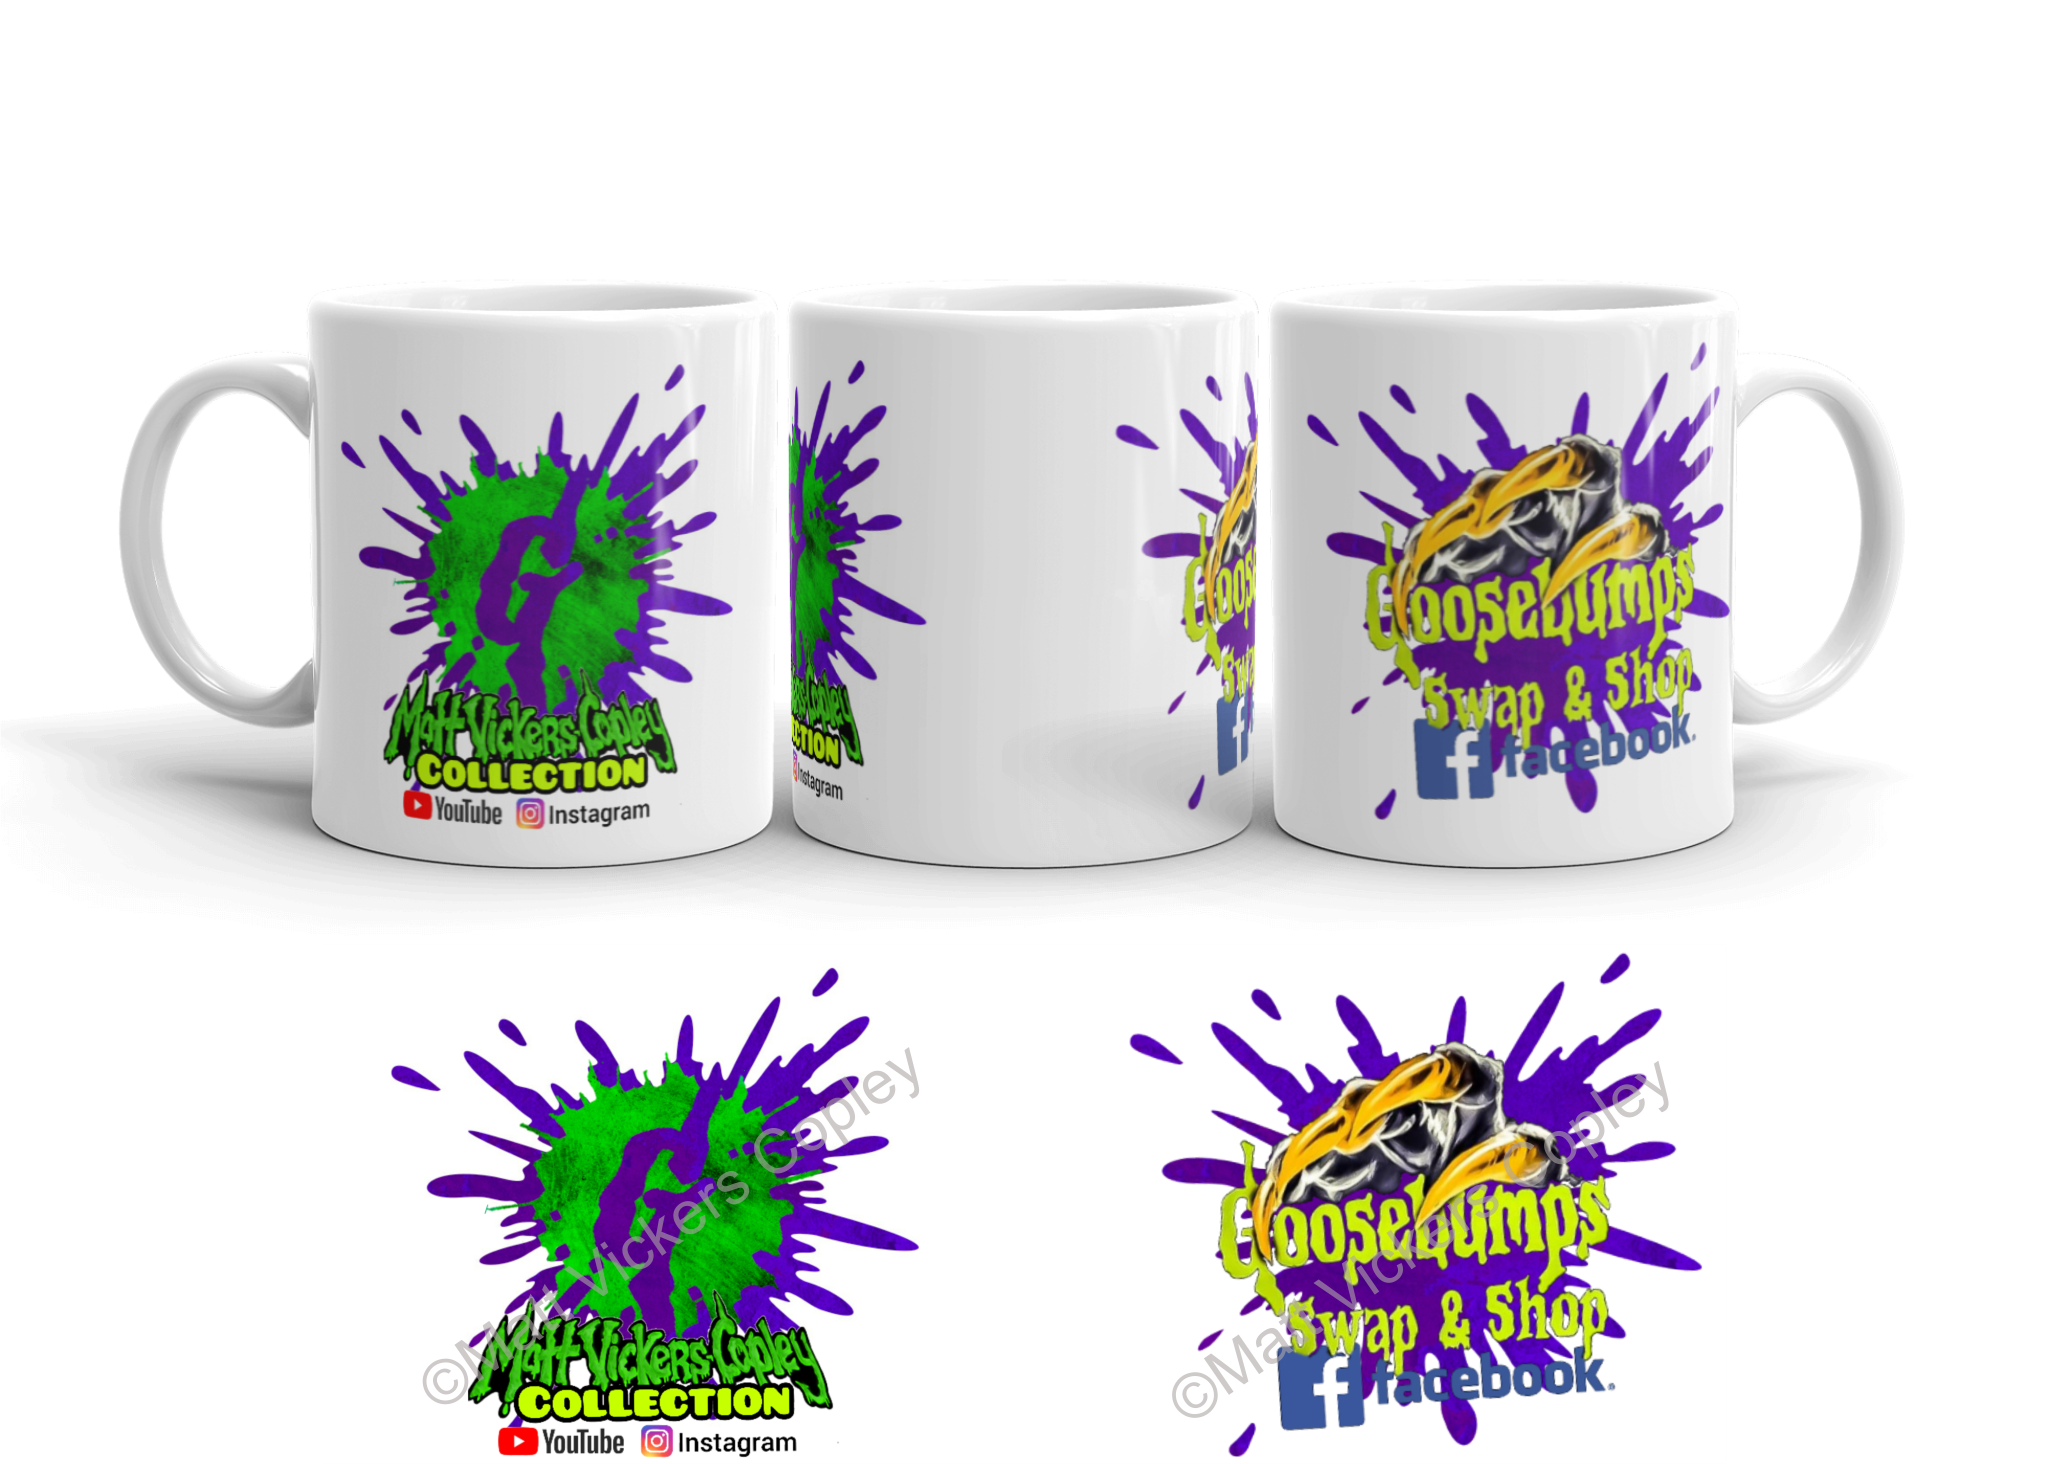 Matt V-C Collection Goosebumps Swap & Shop Mug #2